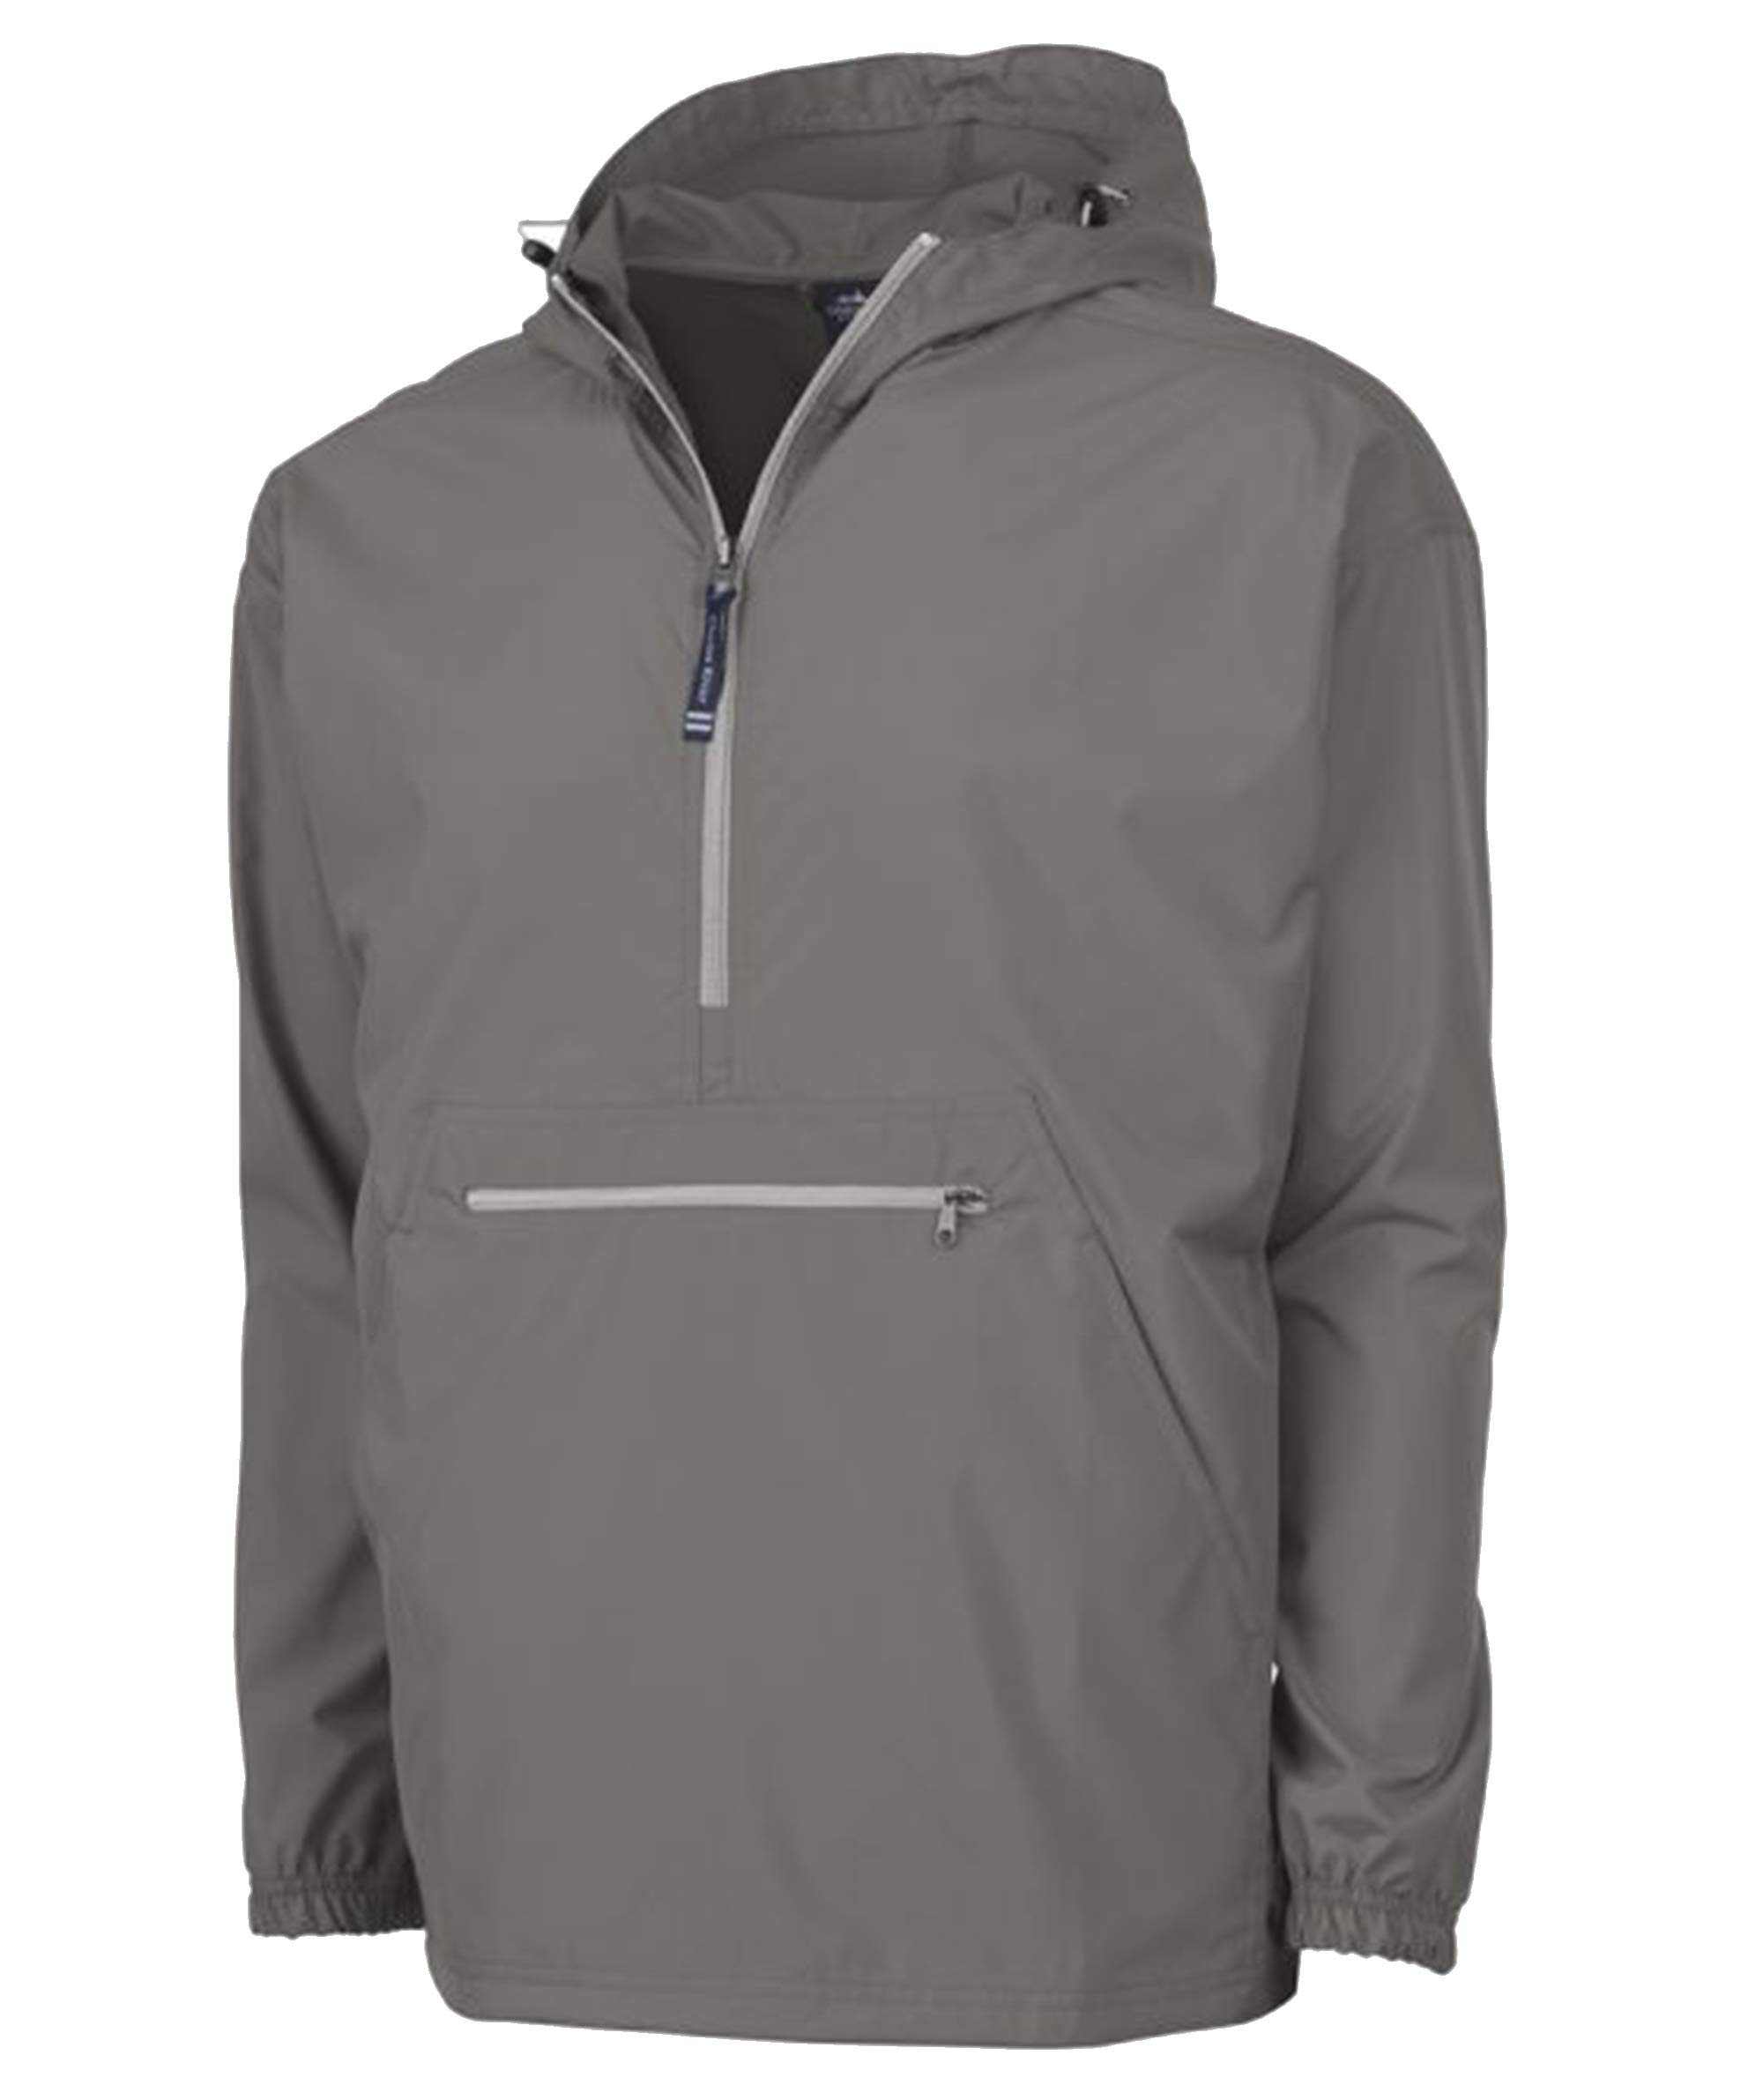 Charles River Apparel Pack-N-Go Wind & Water-Resistant Pullover (Reg/Ext Sizes), Grey, XL